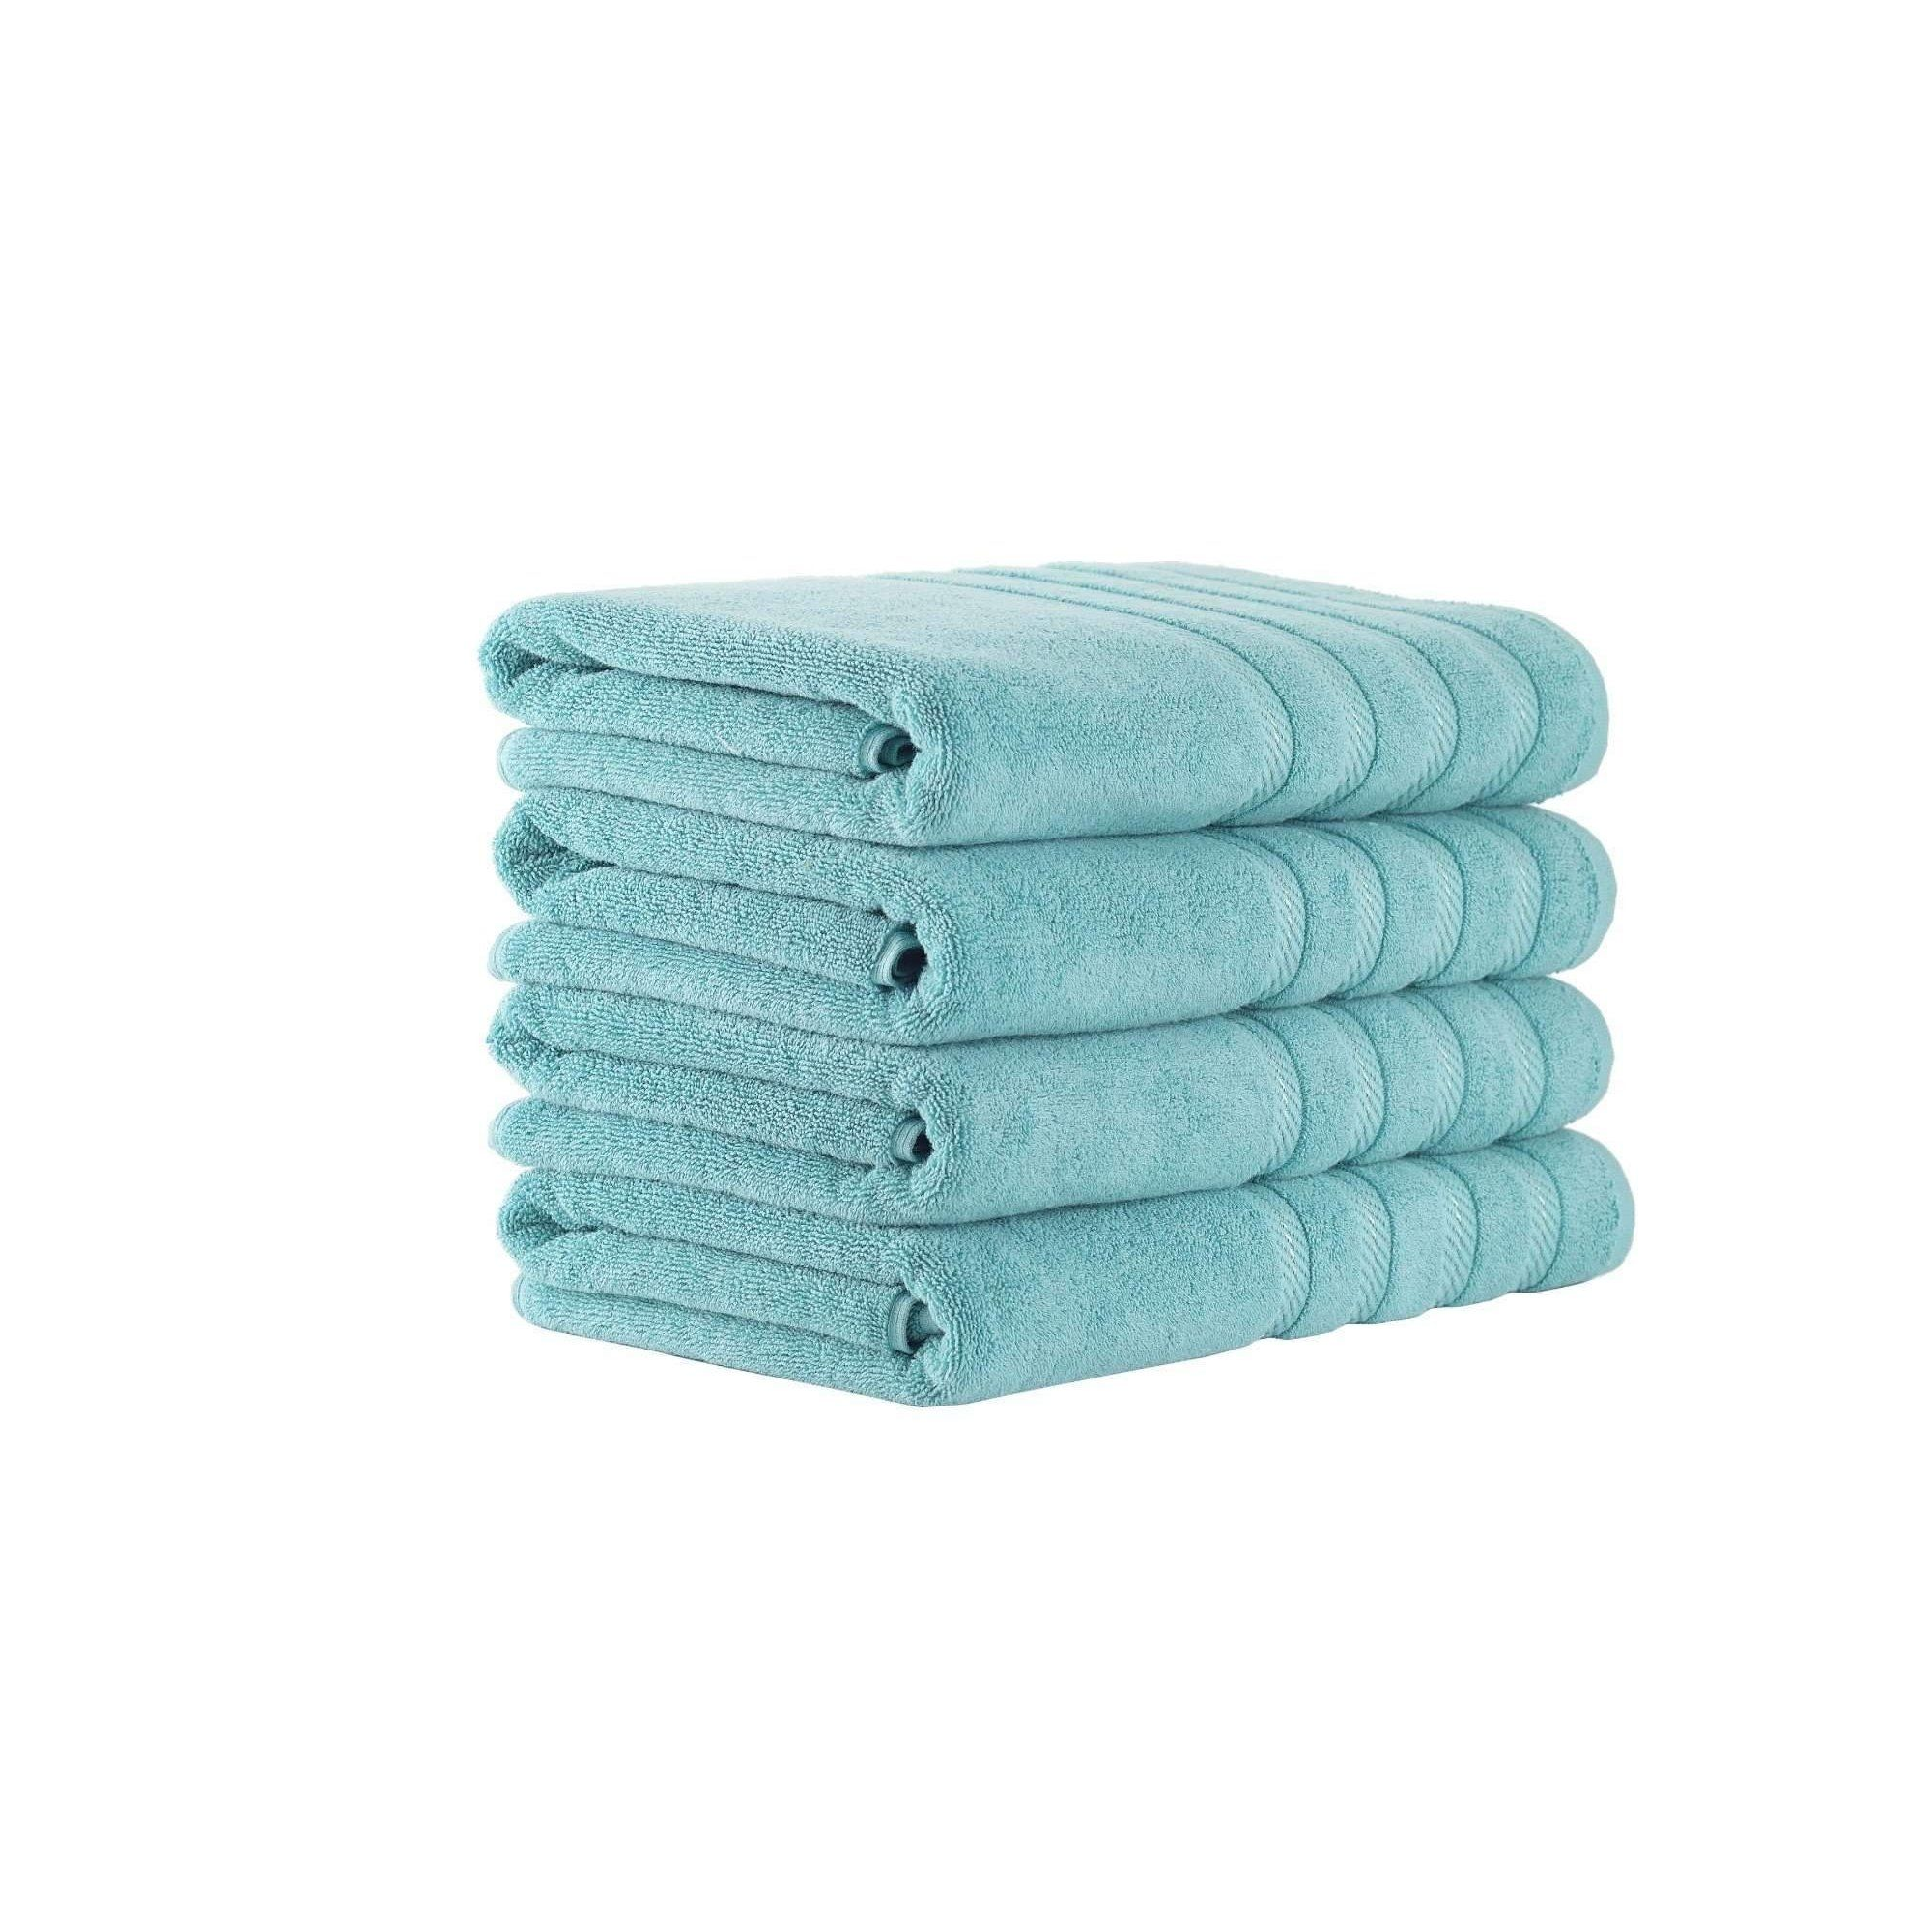 Antalya Collection Turkish Cotton Bath Towels Set of 4